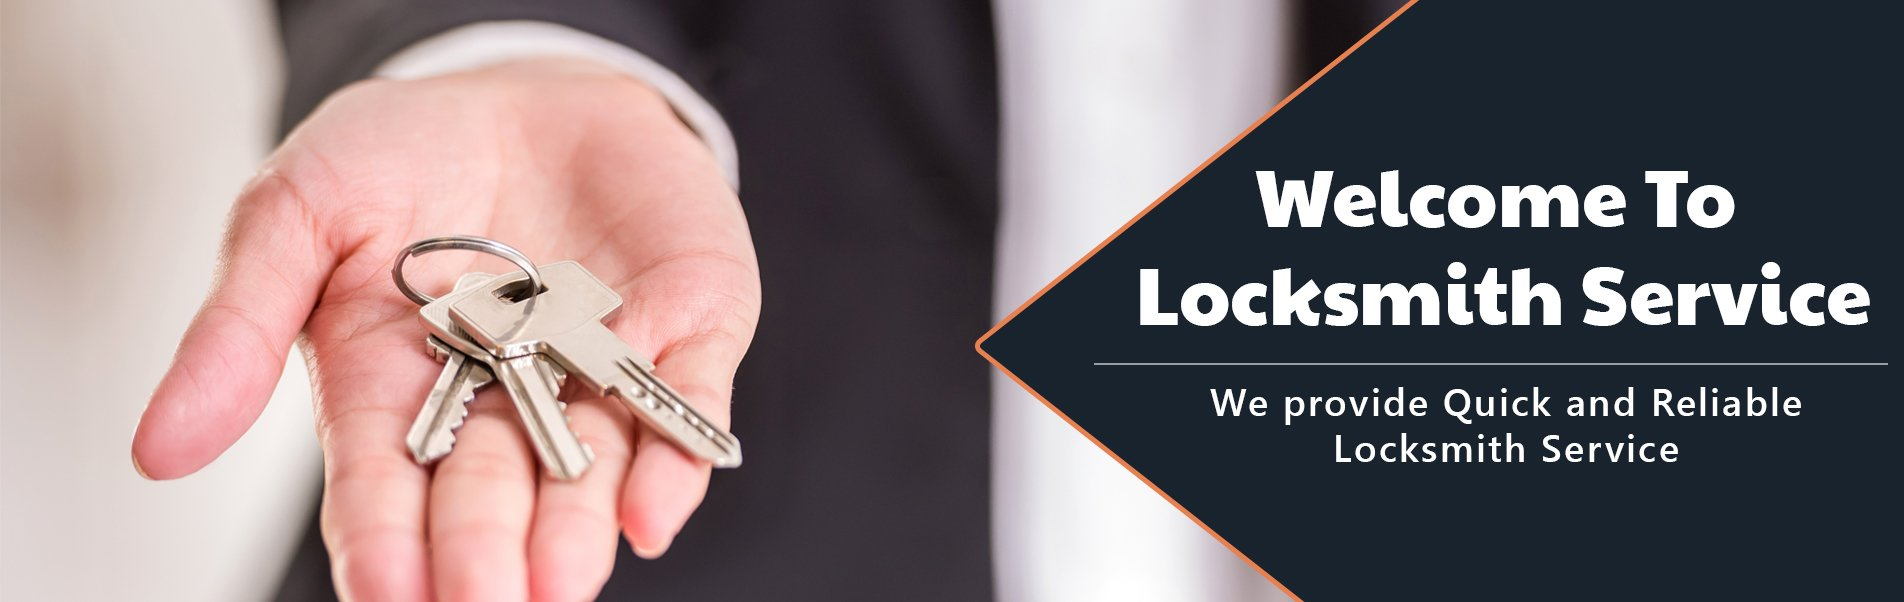 Lakeridge Heights Locksmith Store, Lakeridge Heights, CT 860-365-2053